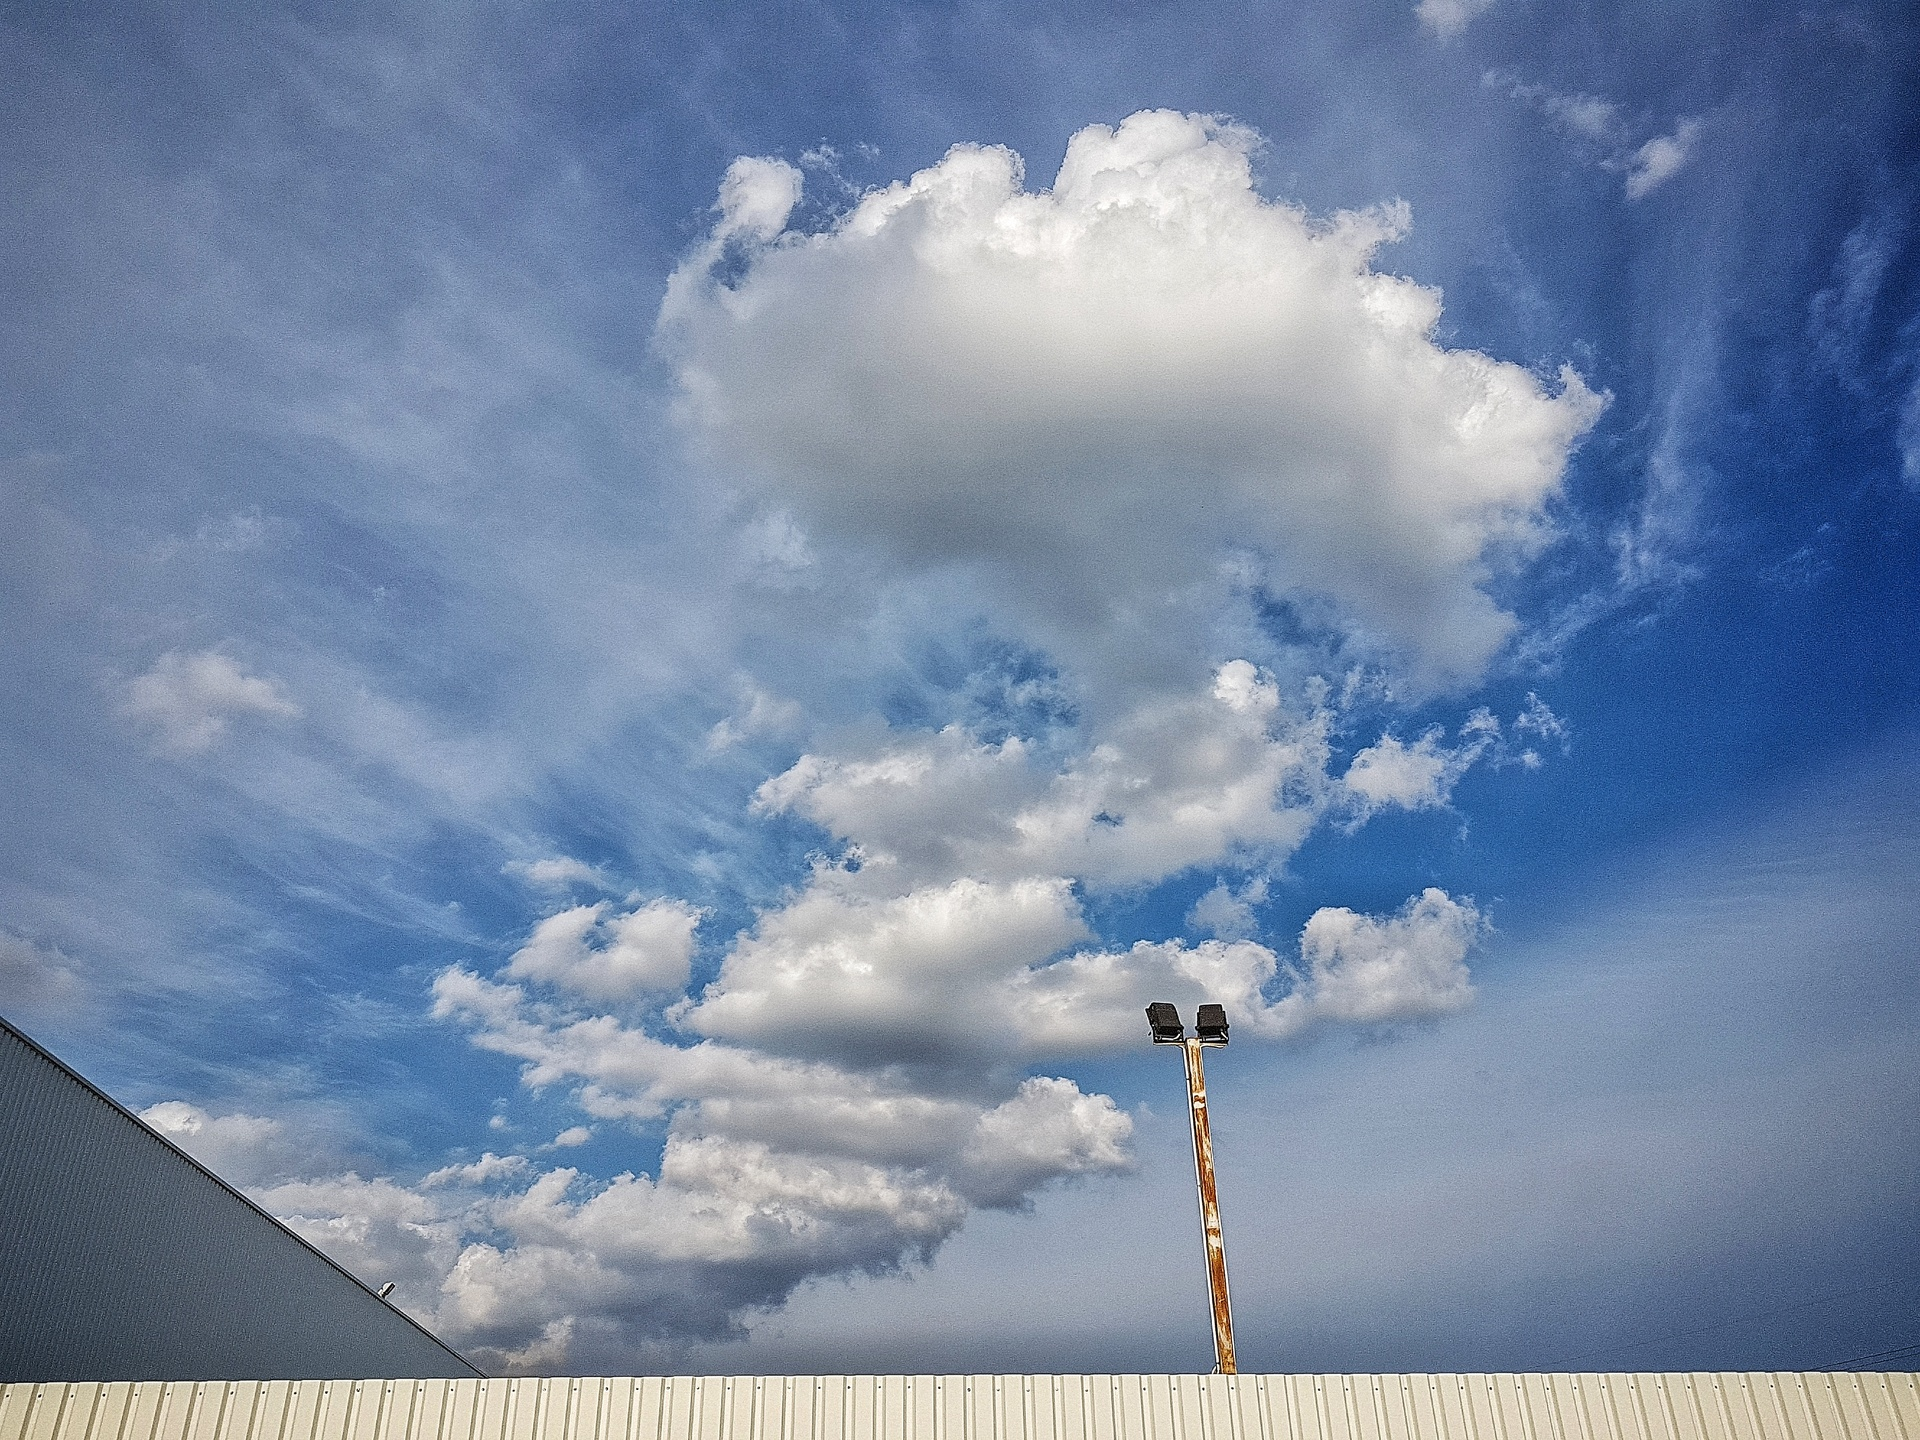 Clouds in the sky. | estraub, cloud, sky, no person